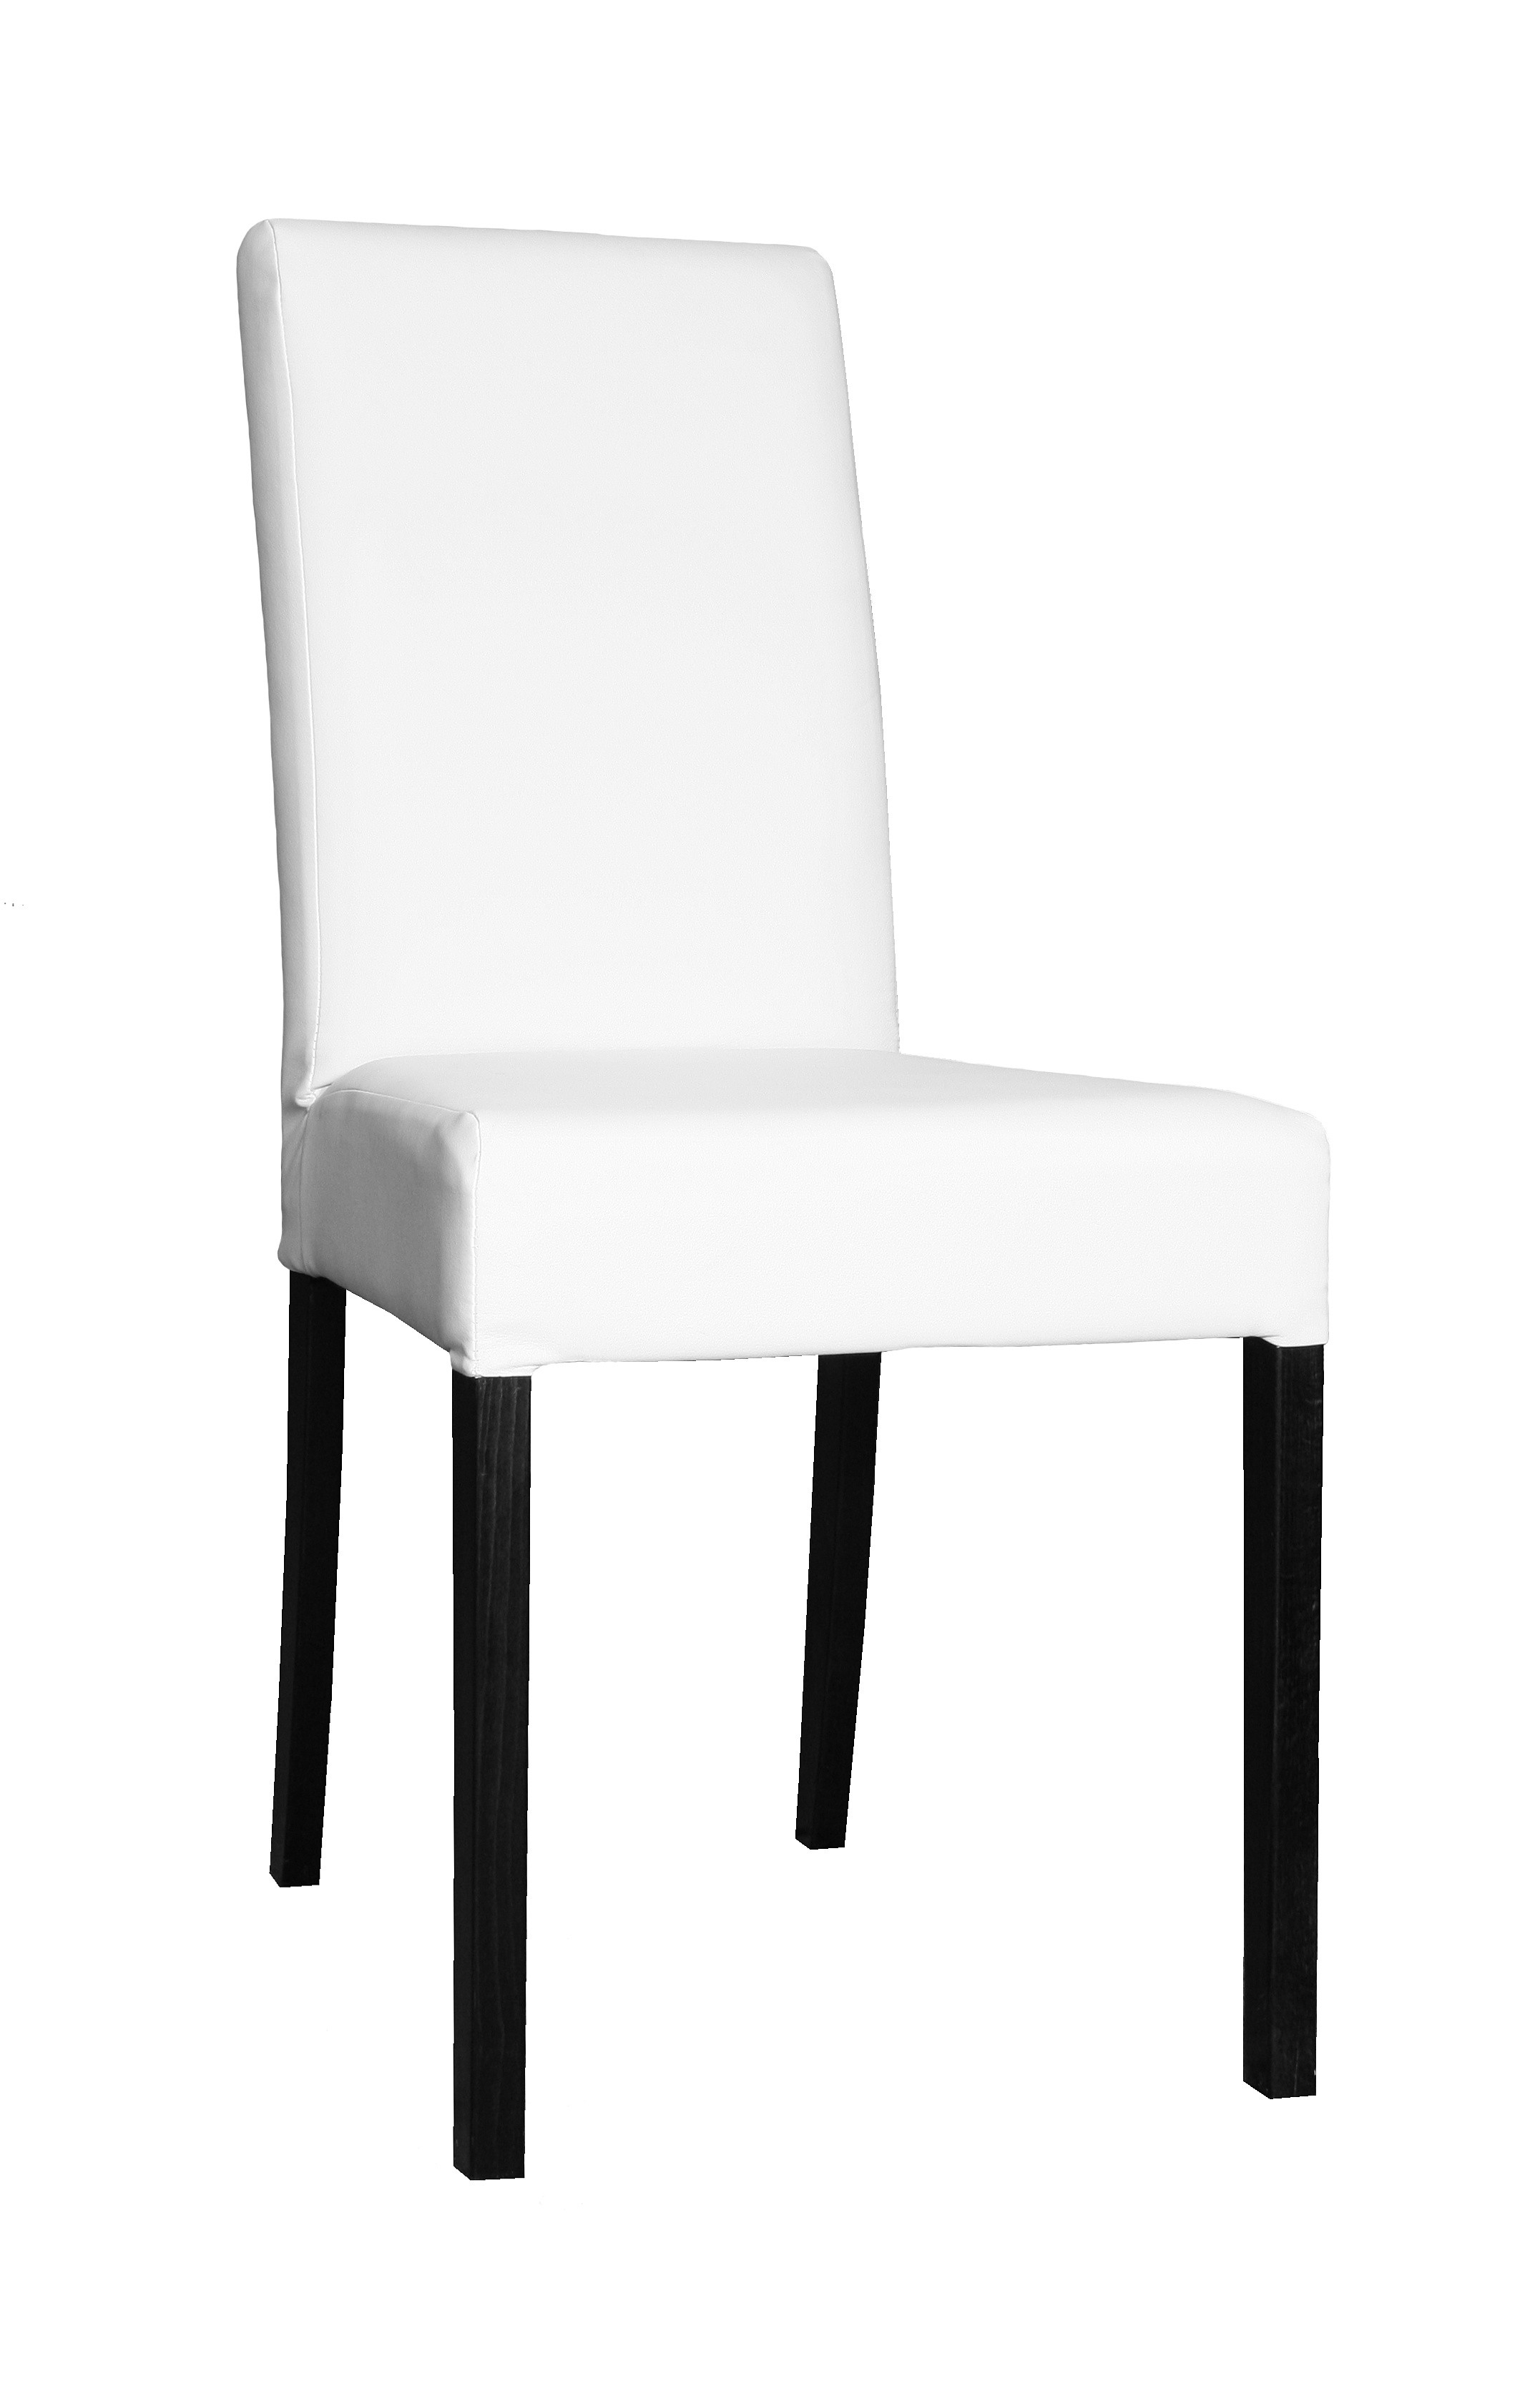 chaises blanches simili cuir chaise simili cuir blanc lot. Black Bedroom Furniture Sets. Home Design Ideas